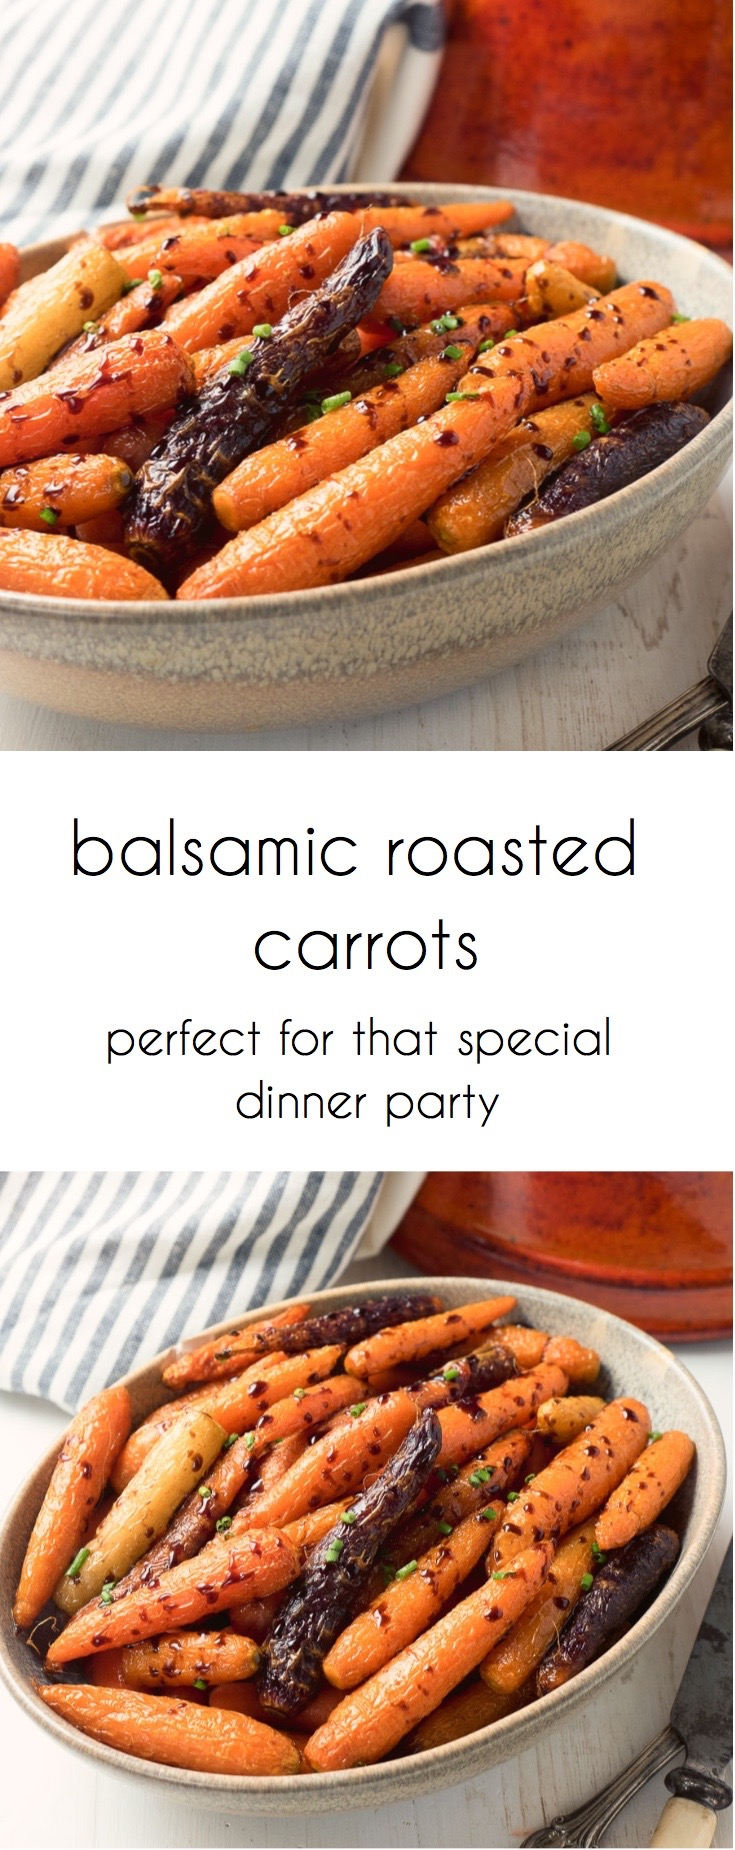 Balsamic roasted carrots are the perfect side for that special dinner.